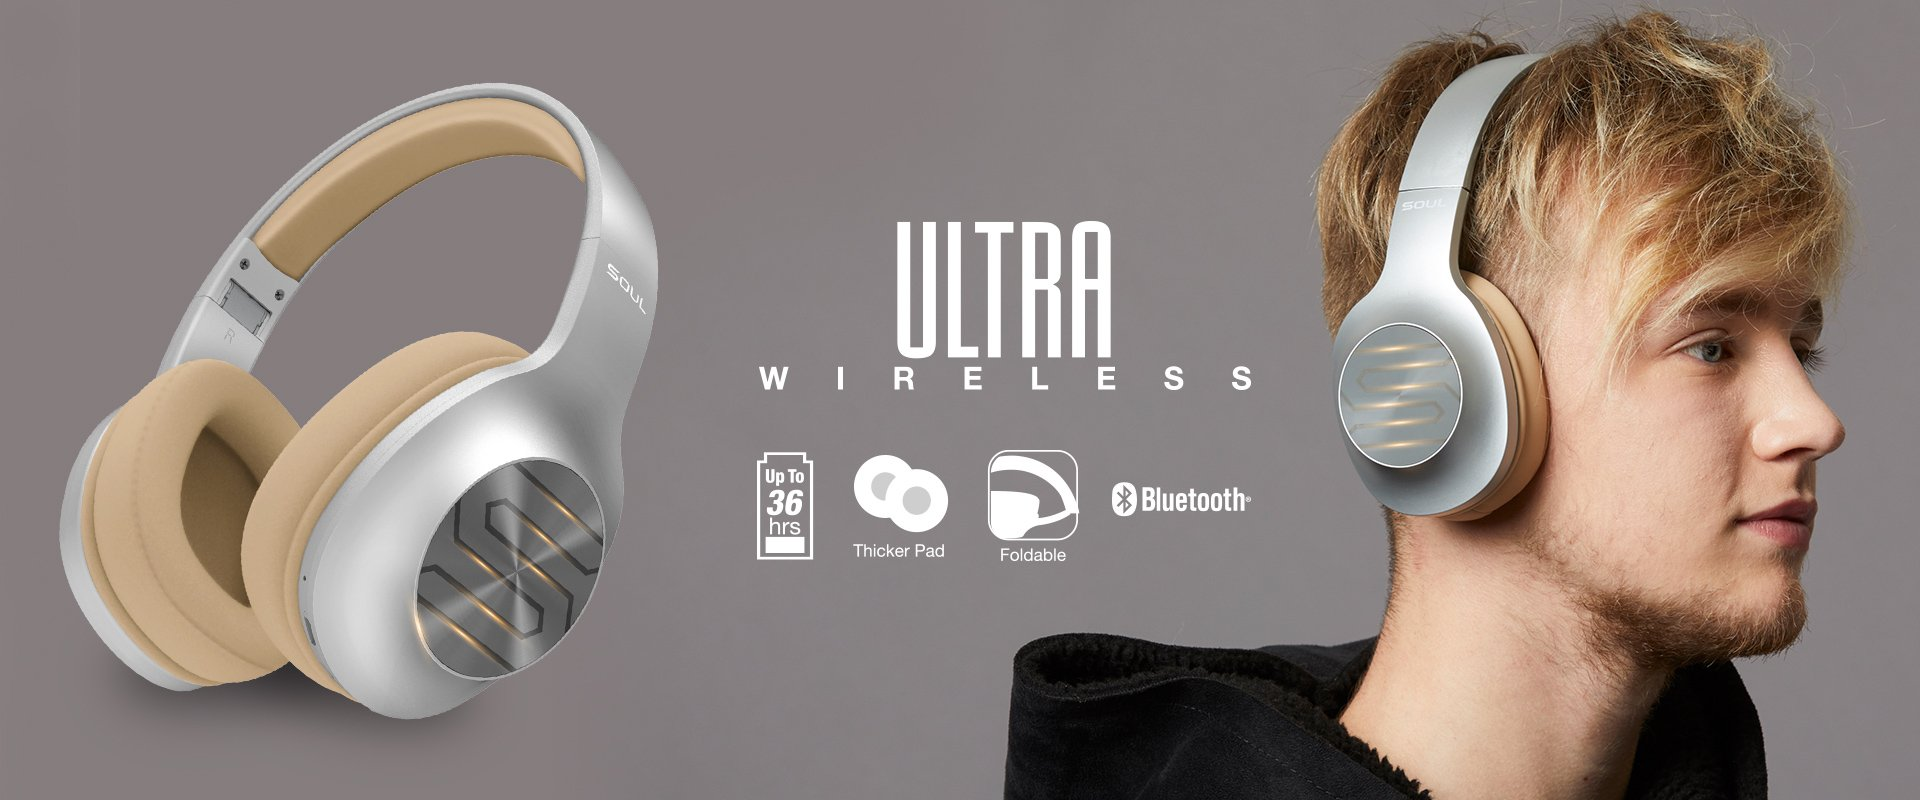 Ultra Wireless